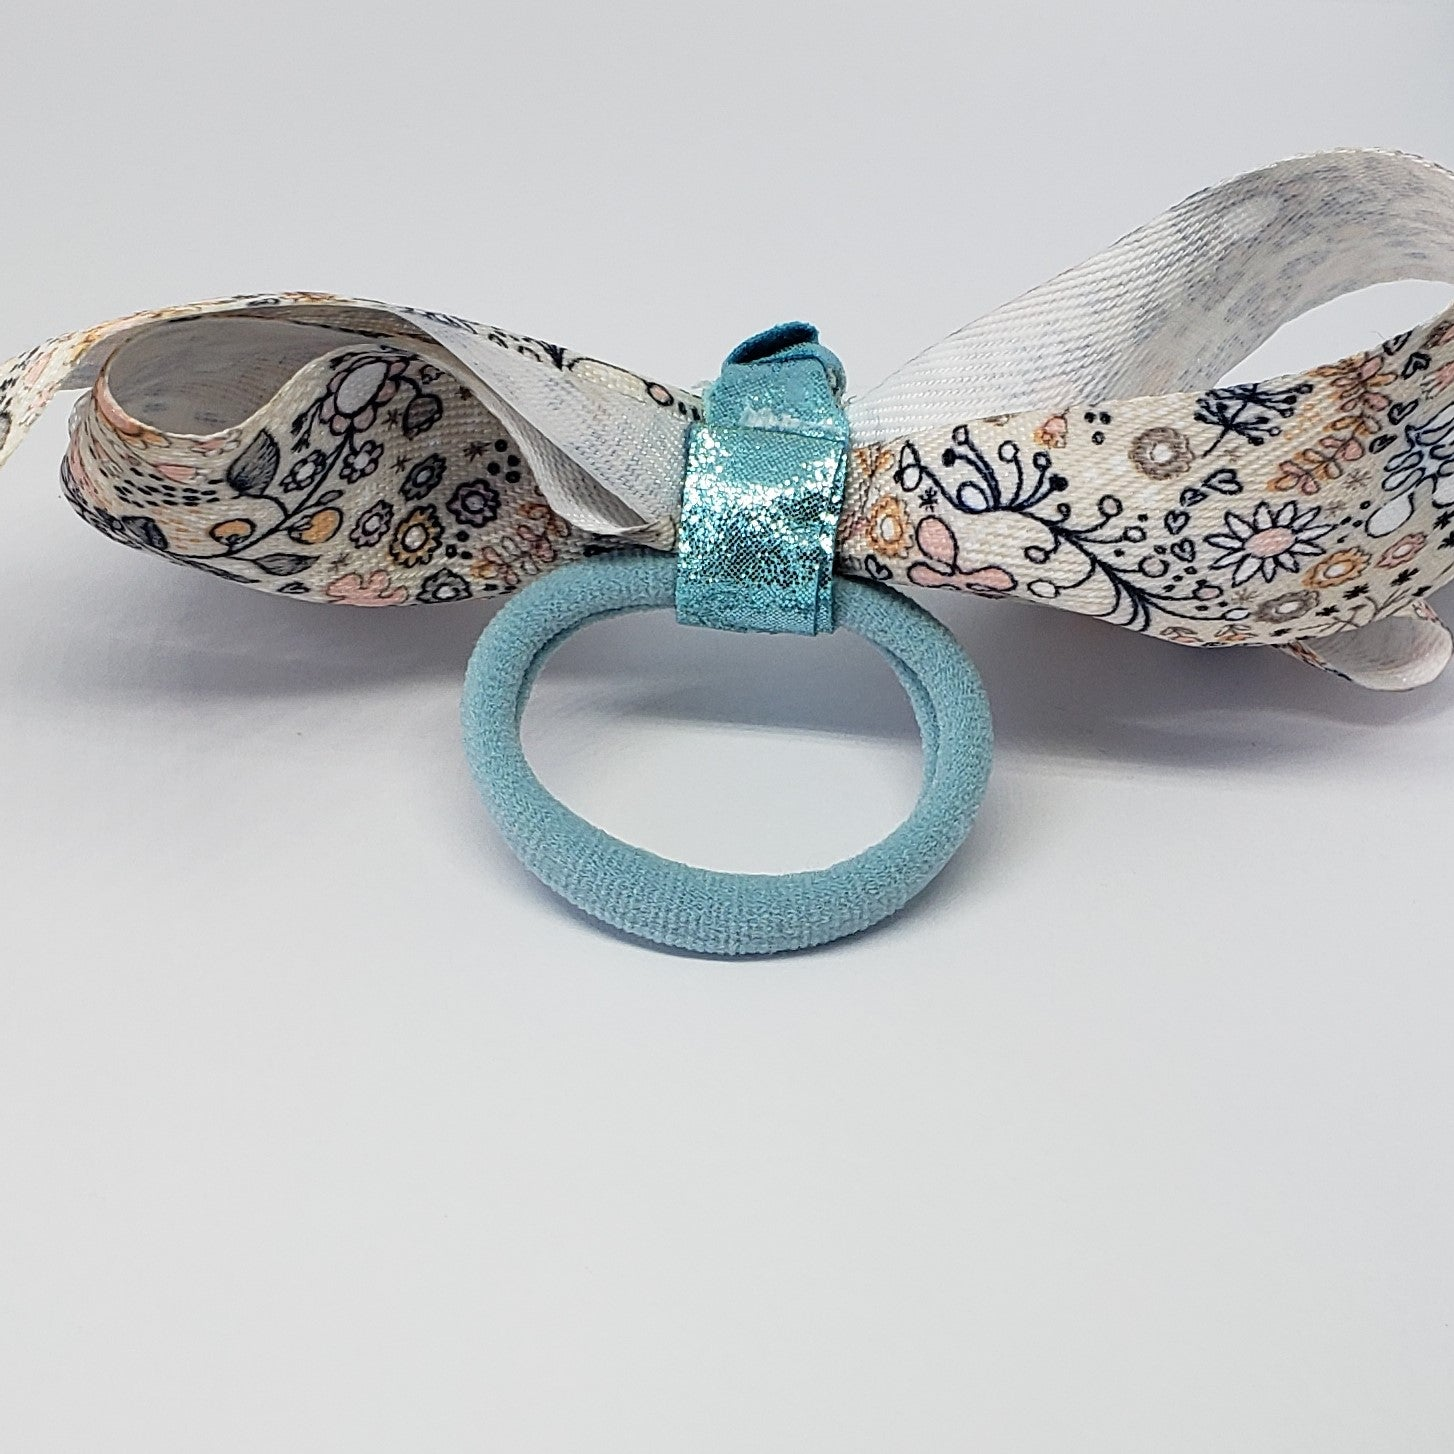 Kelsea Cream & Navy Floral Bow with Turquoise Knotted Detail - Houzz of DVA Boutique